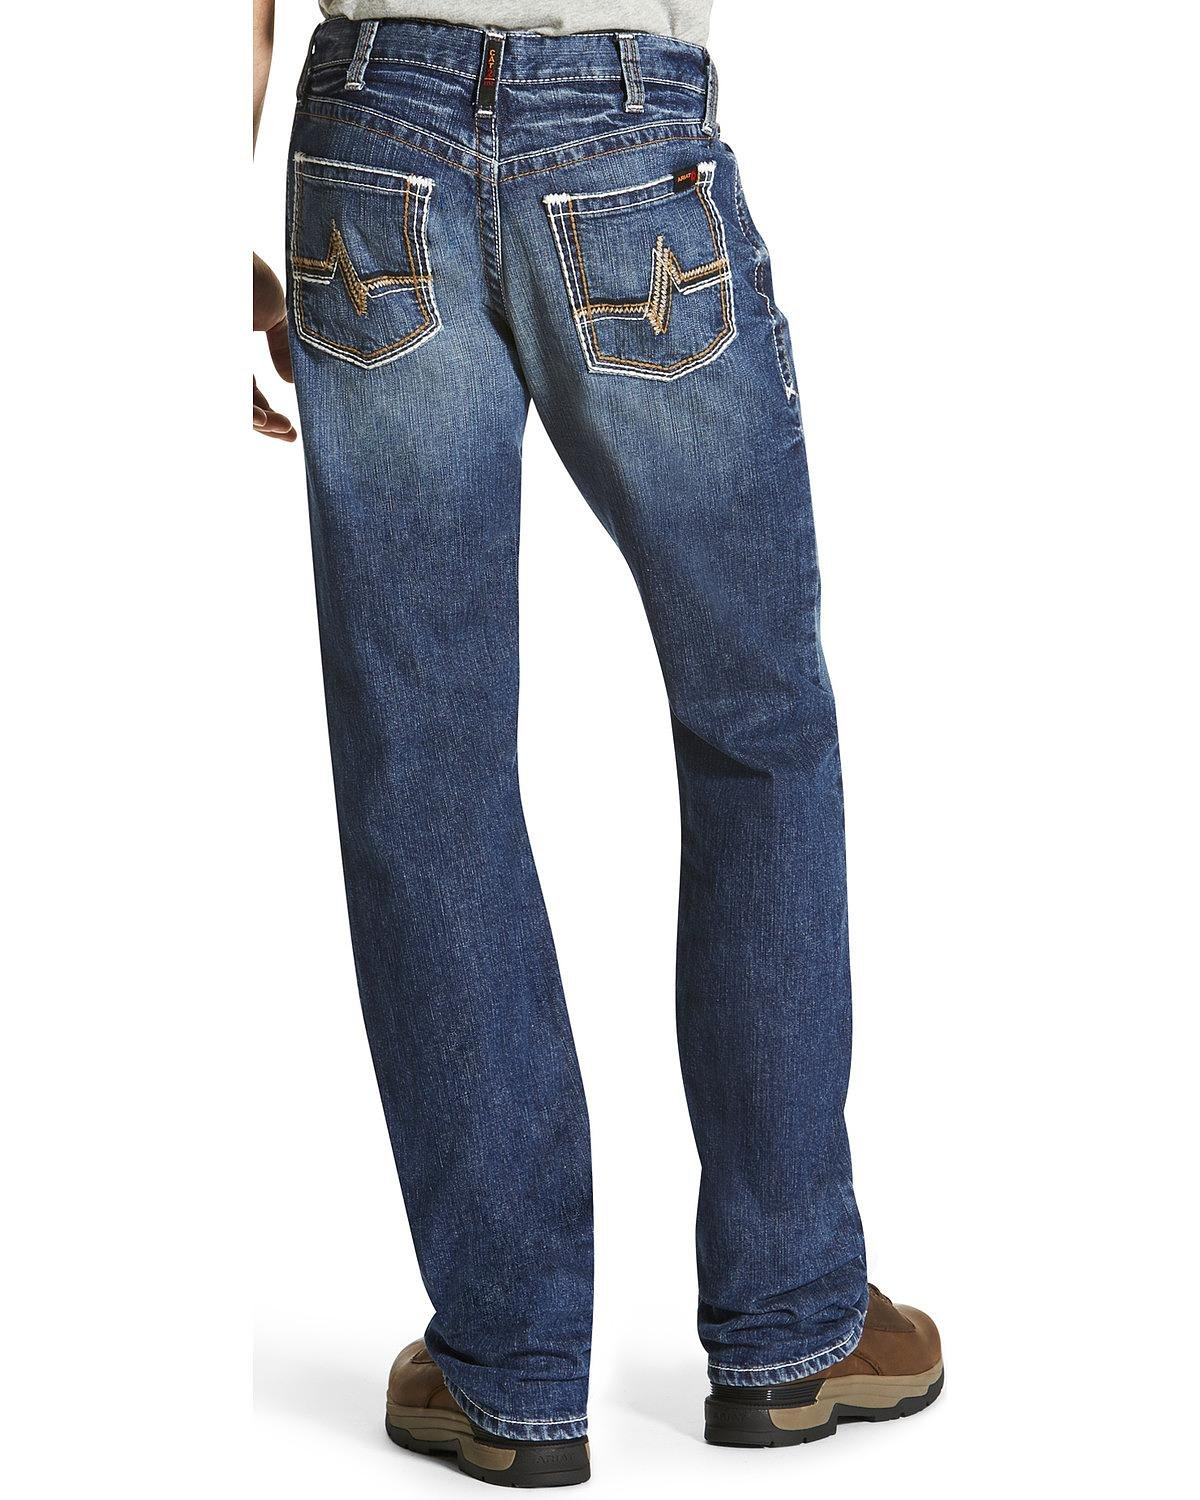 Ariat Men's M4 Flame Resistant Alloy Boot Cut Jeans Indigo 34W x 30L